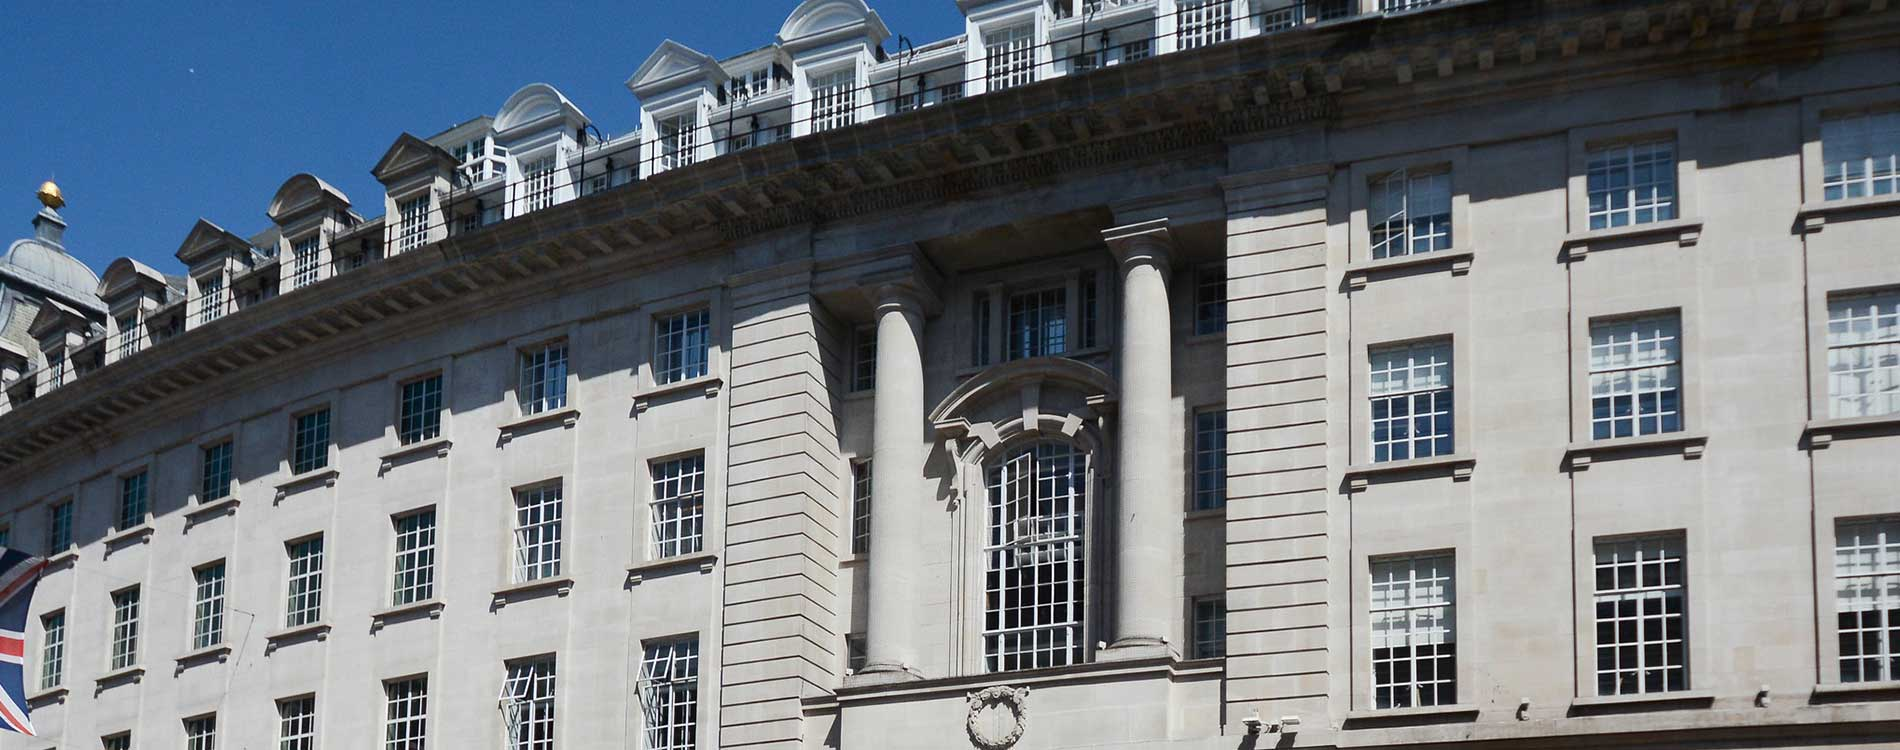 exterior shot of venture house from regents street showing the scale of the building